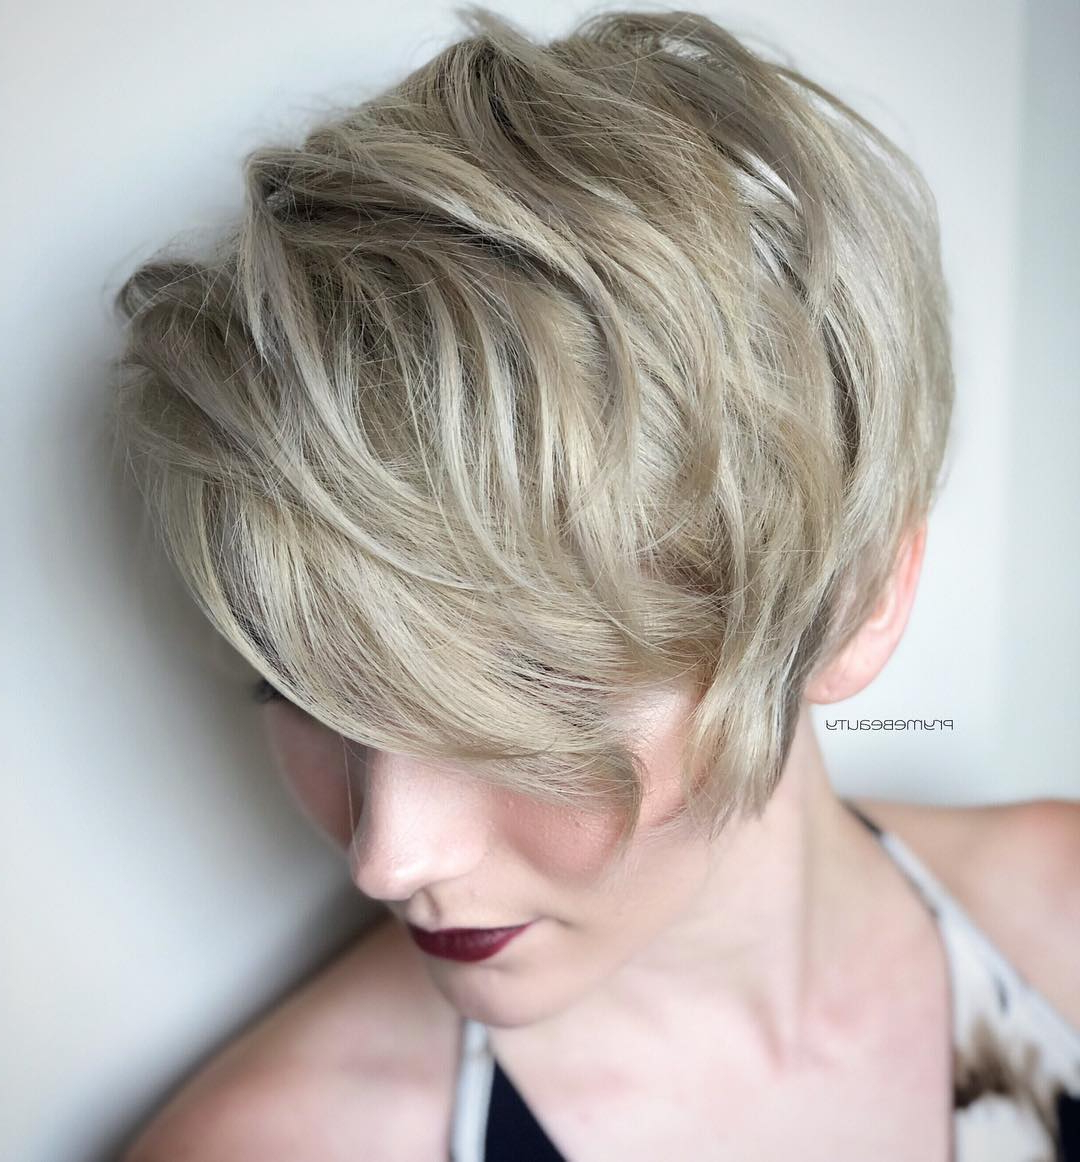 Top 10 Trendy, Low Maintenance Short Layered Hairstyles 2020 Throughout Simple And Stylish Bob Haircuts (View 20 of 20)